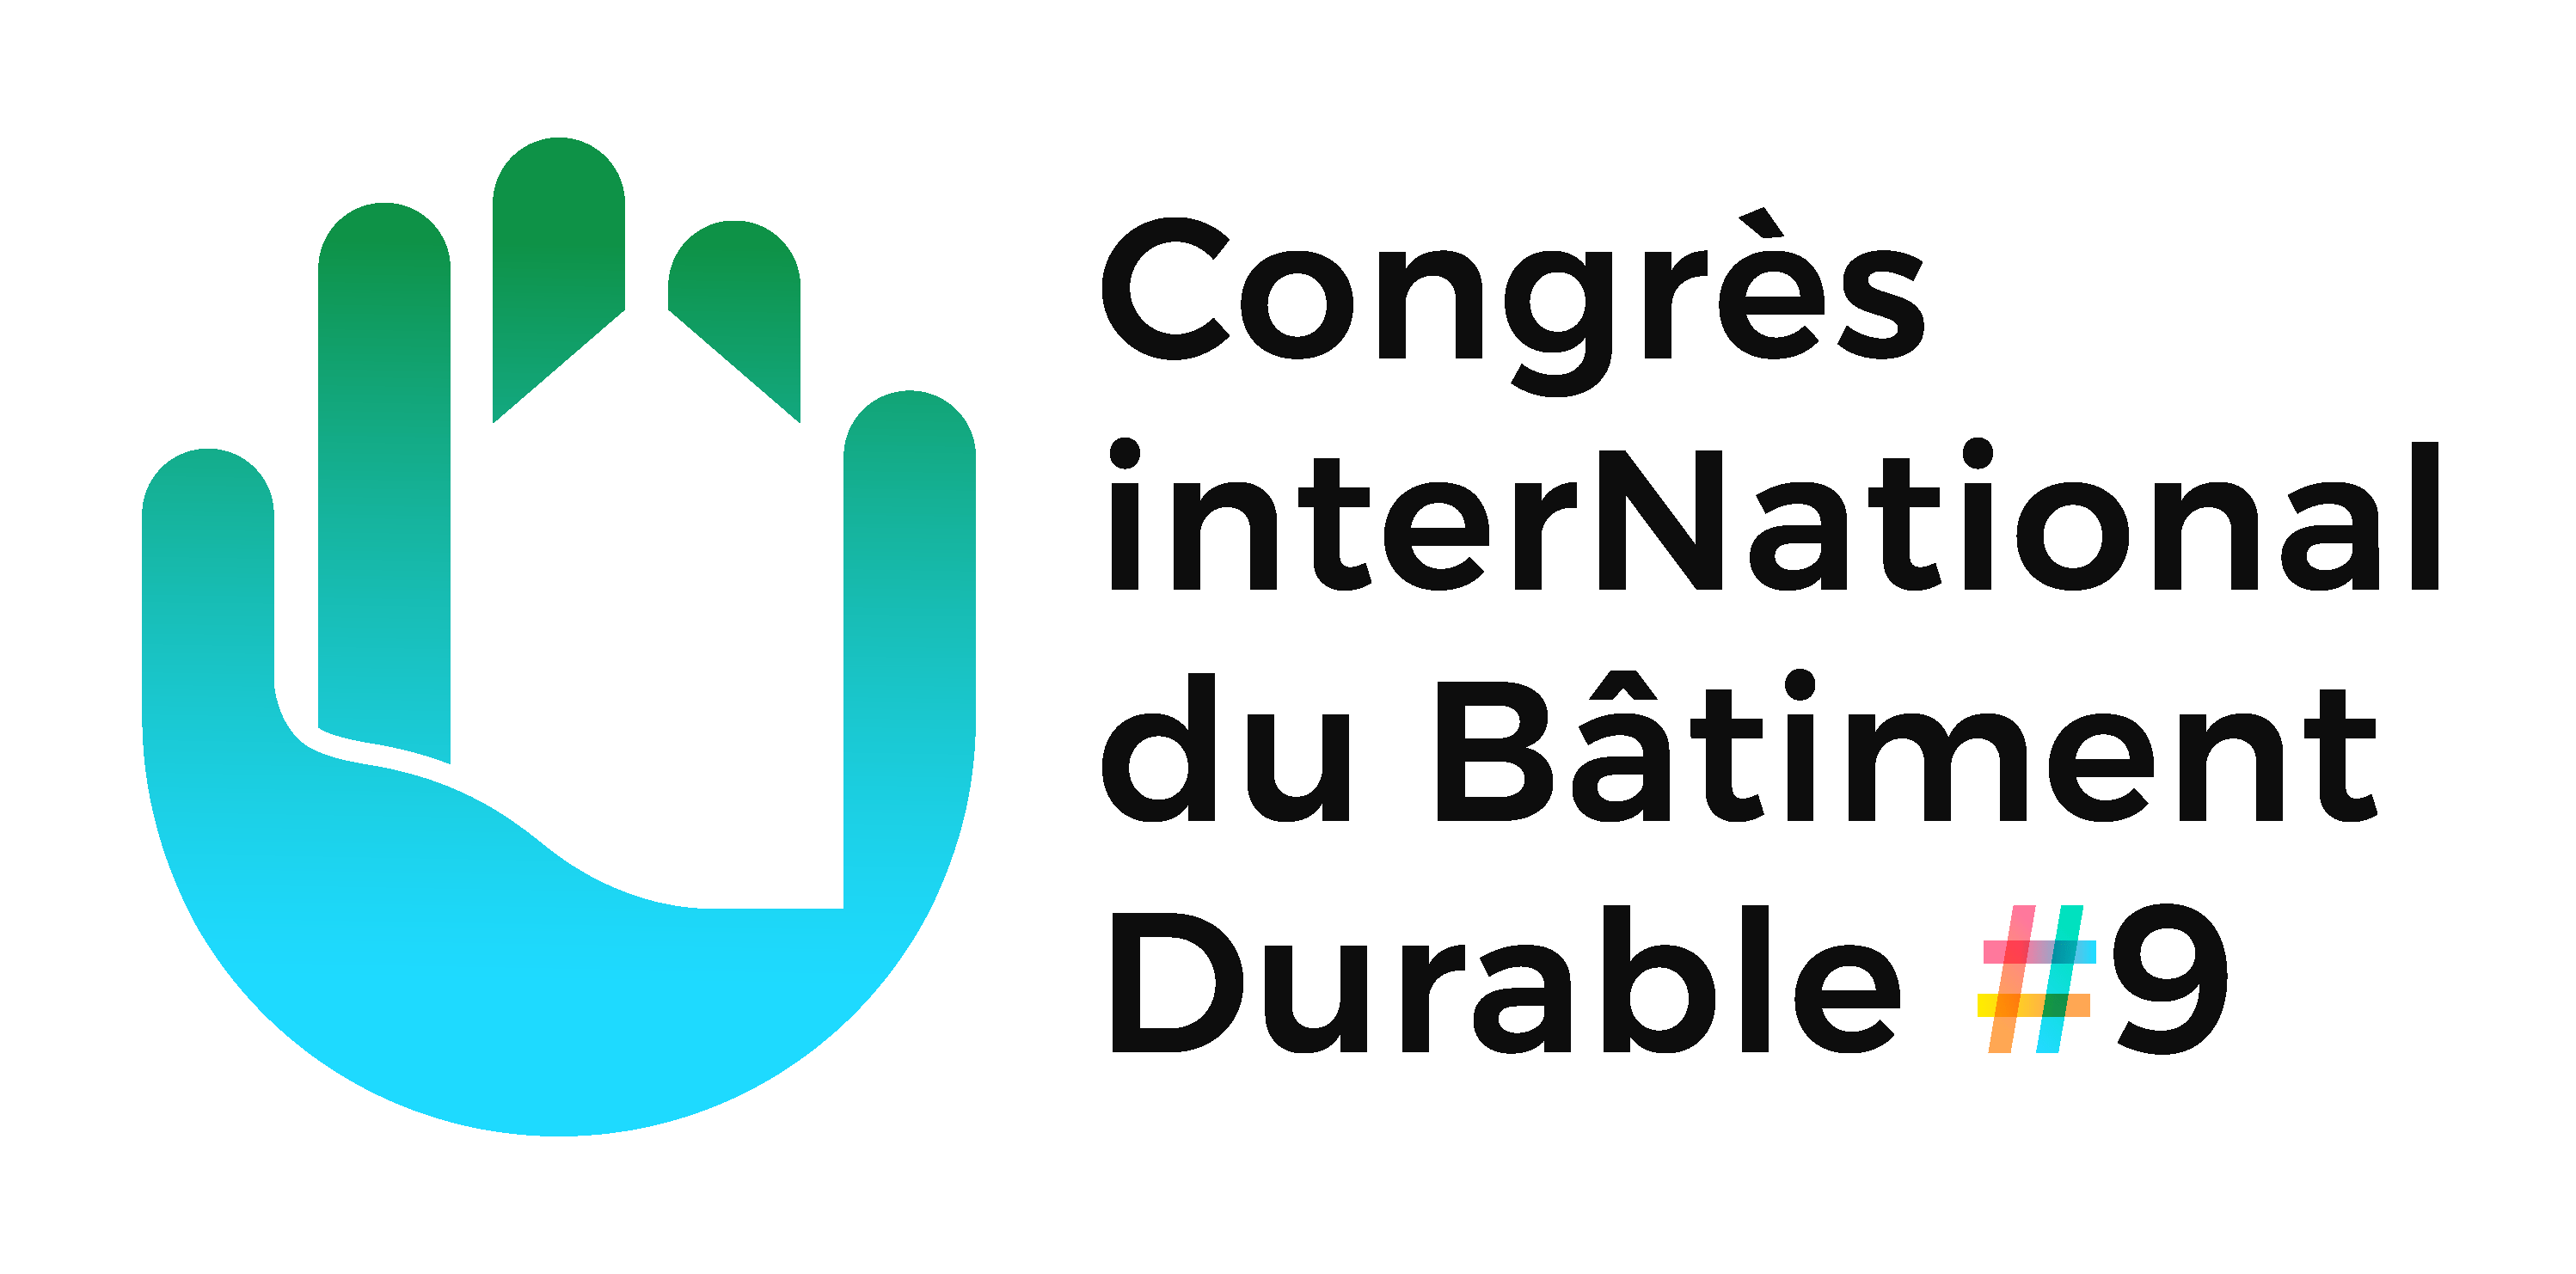 Der Kongress : To build or not to build